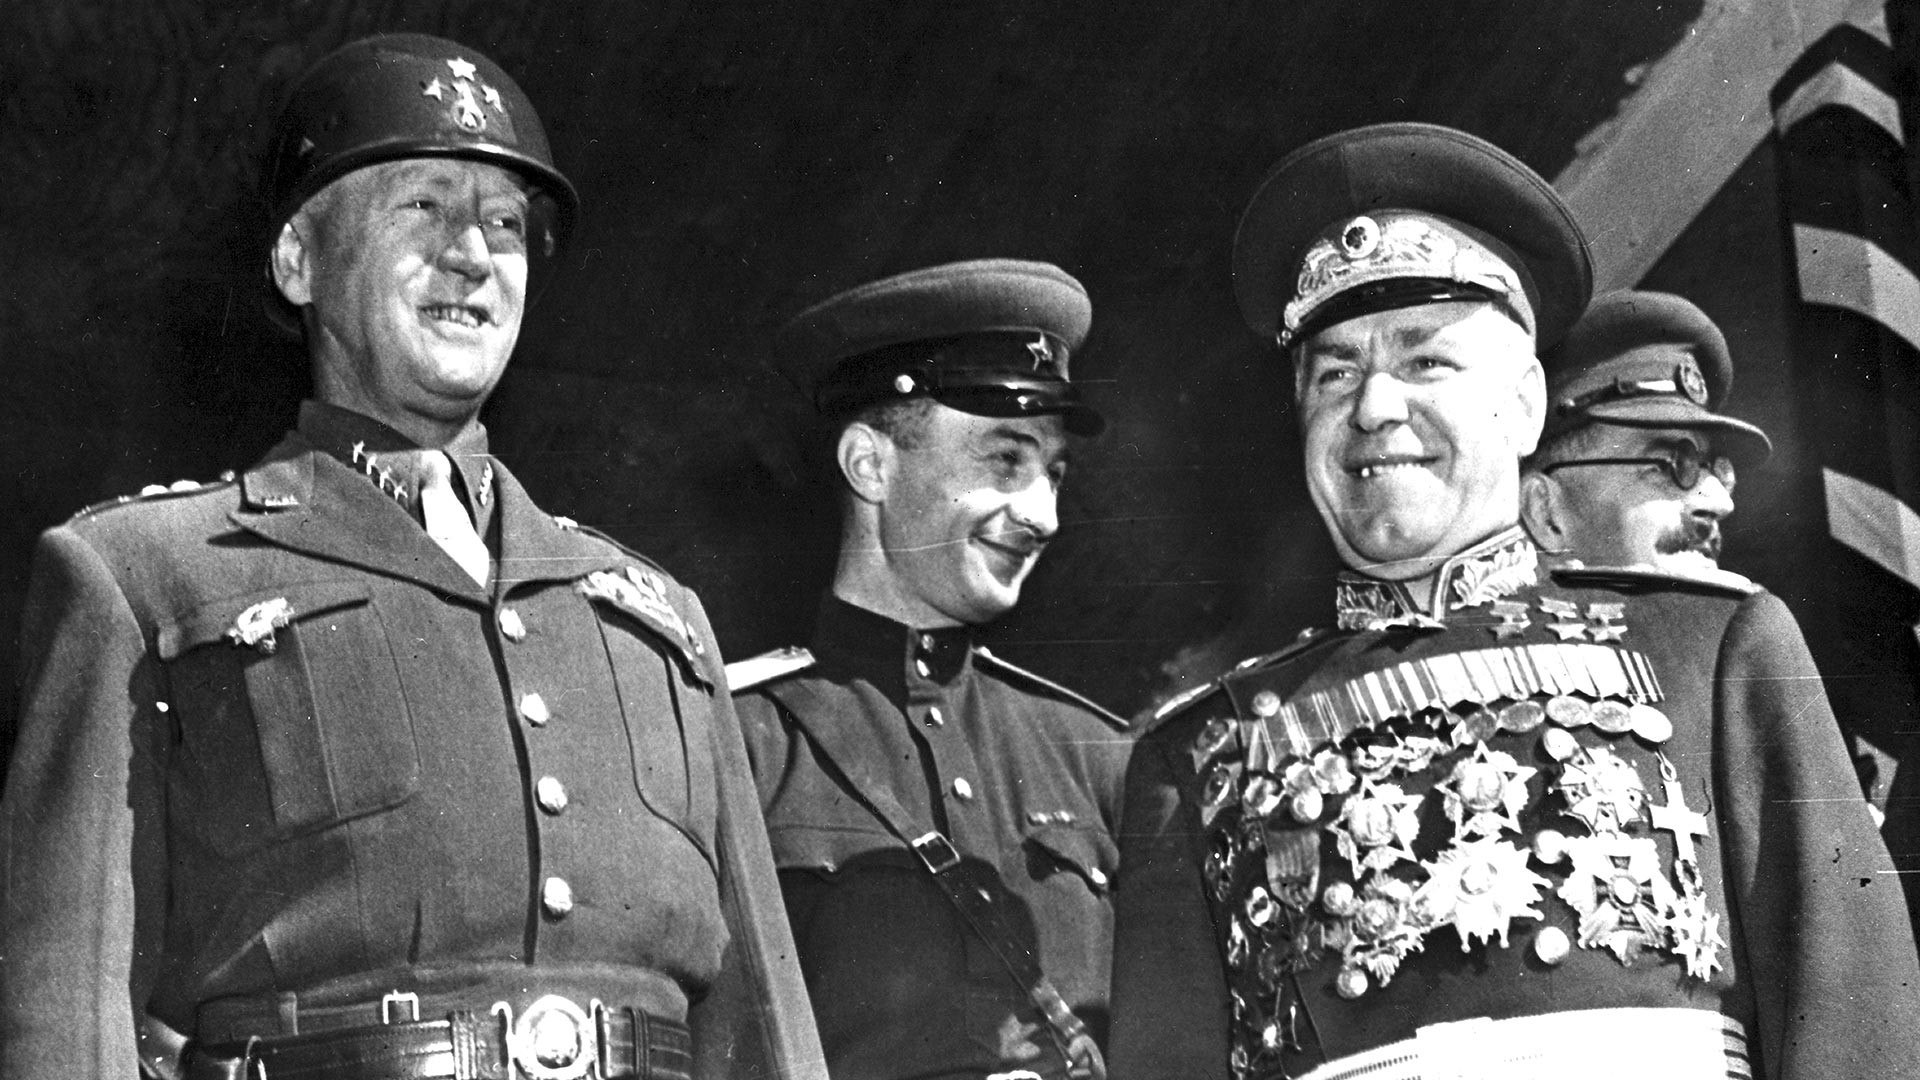 George S. Patton and Georgy Zhukov at the parade on September 7.